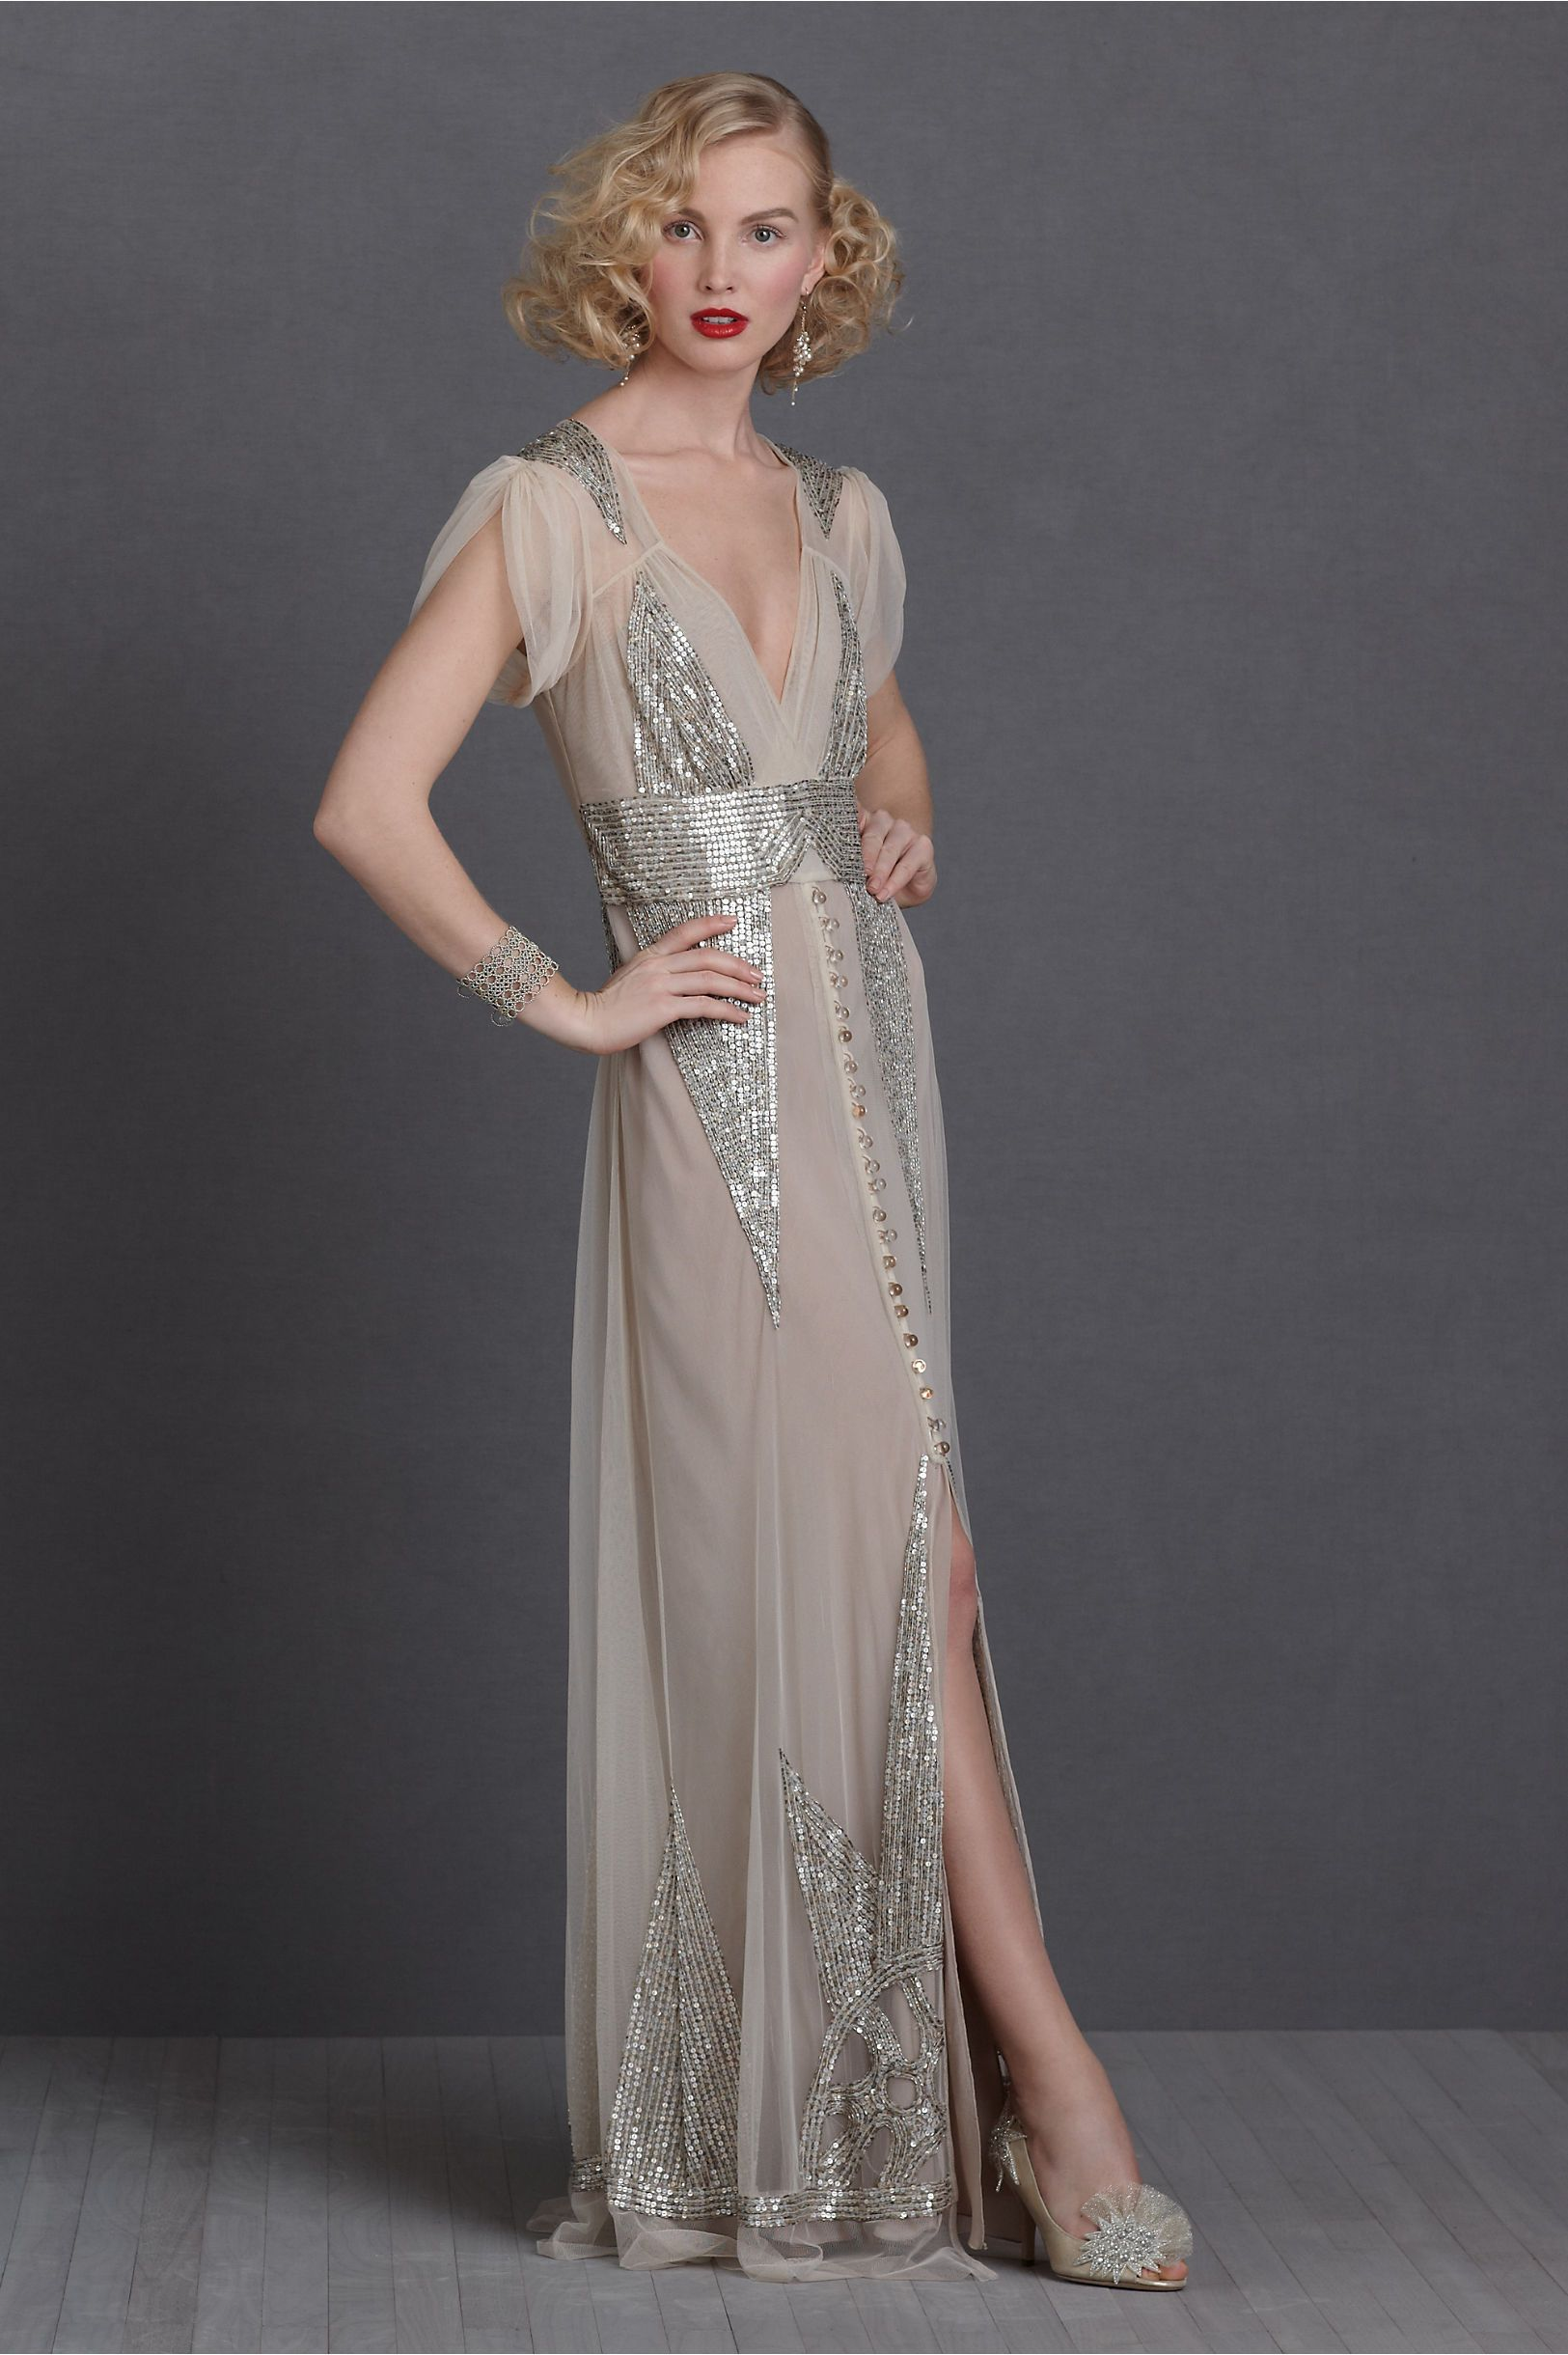 I love the clothes of this era.  Aiguille Gown by Anna Sui (art deco arcs of sequins)